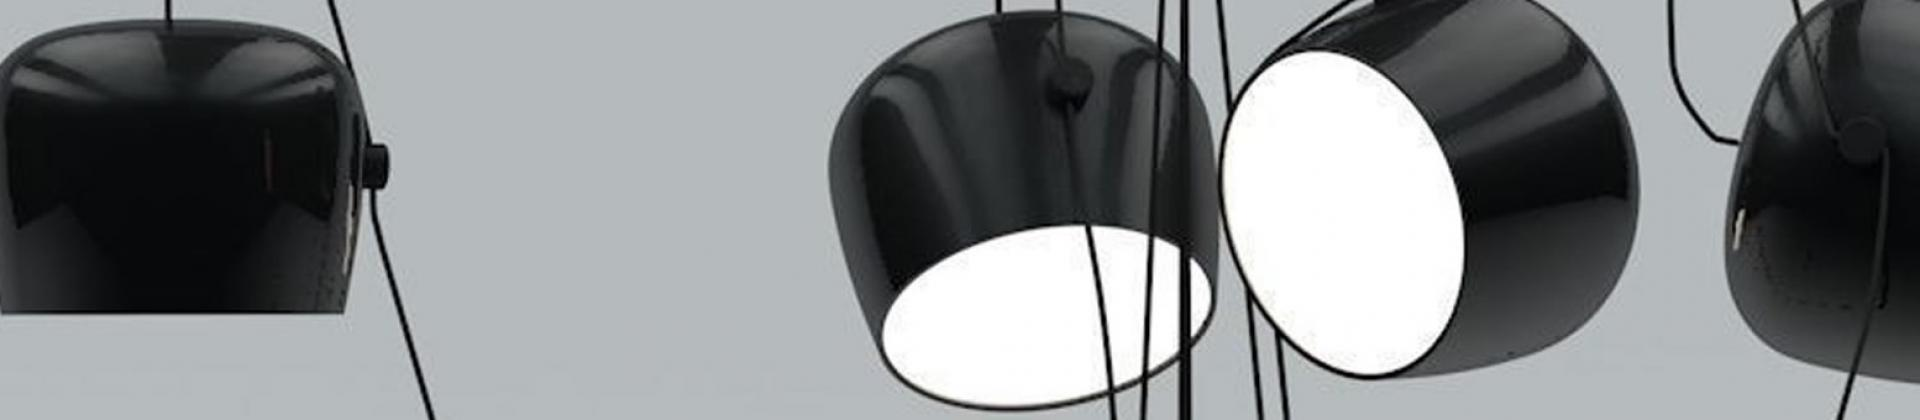 Parentesi design lamps by Flos